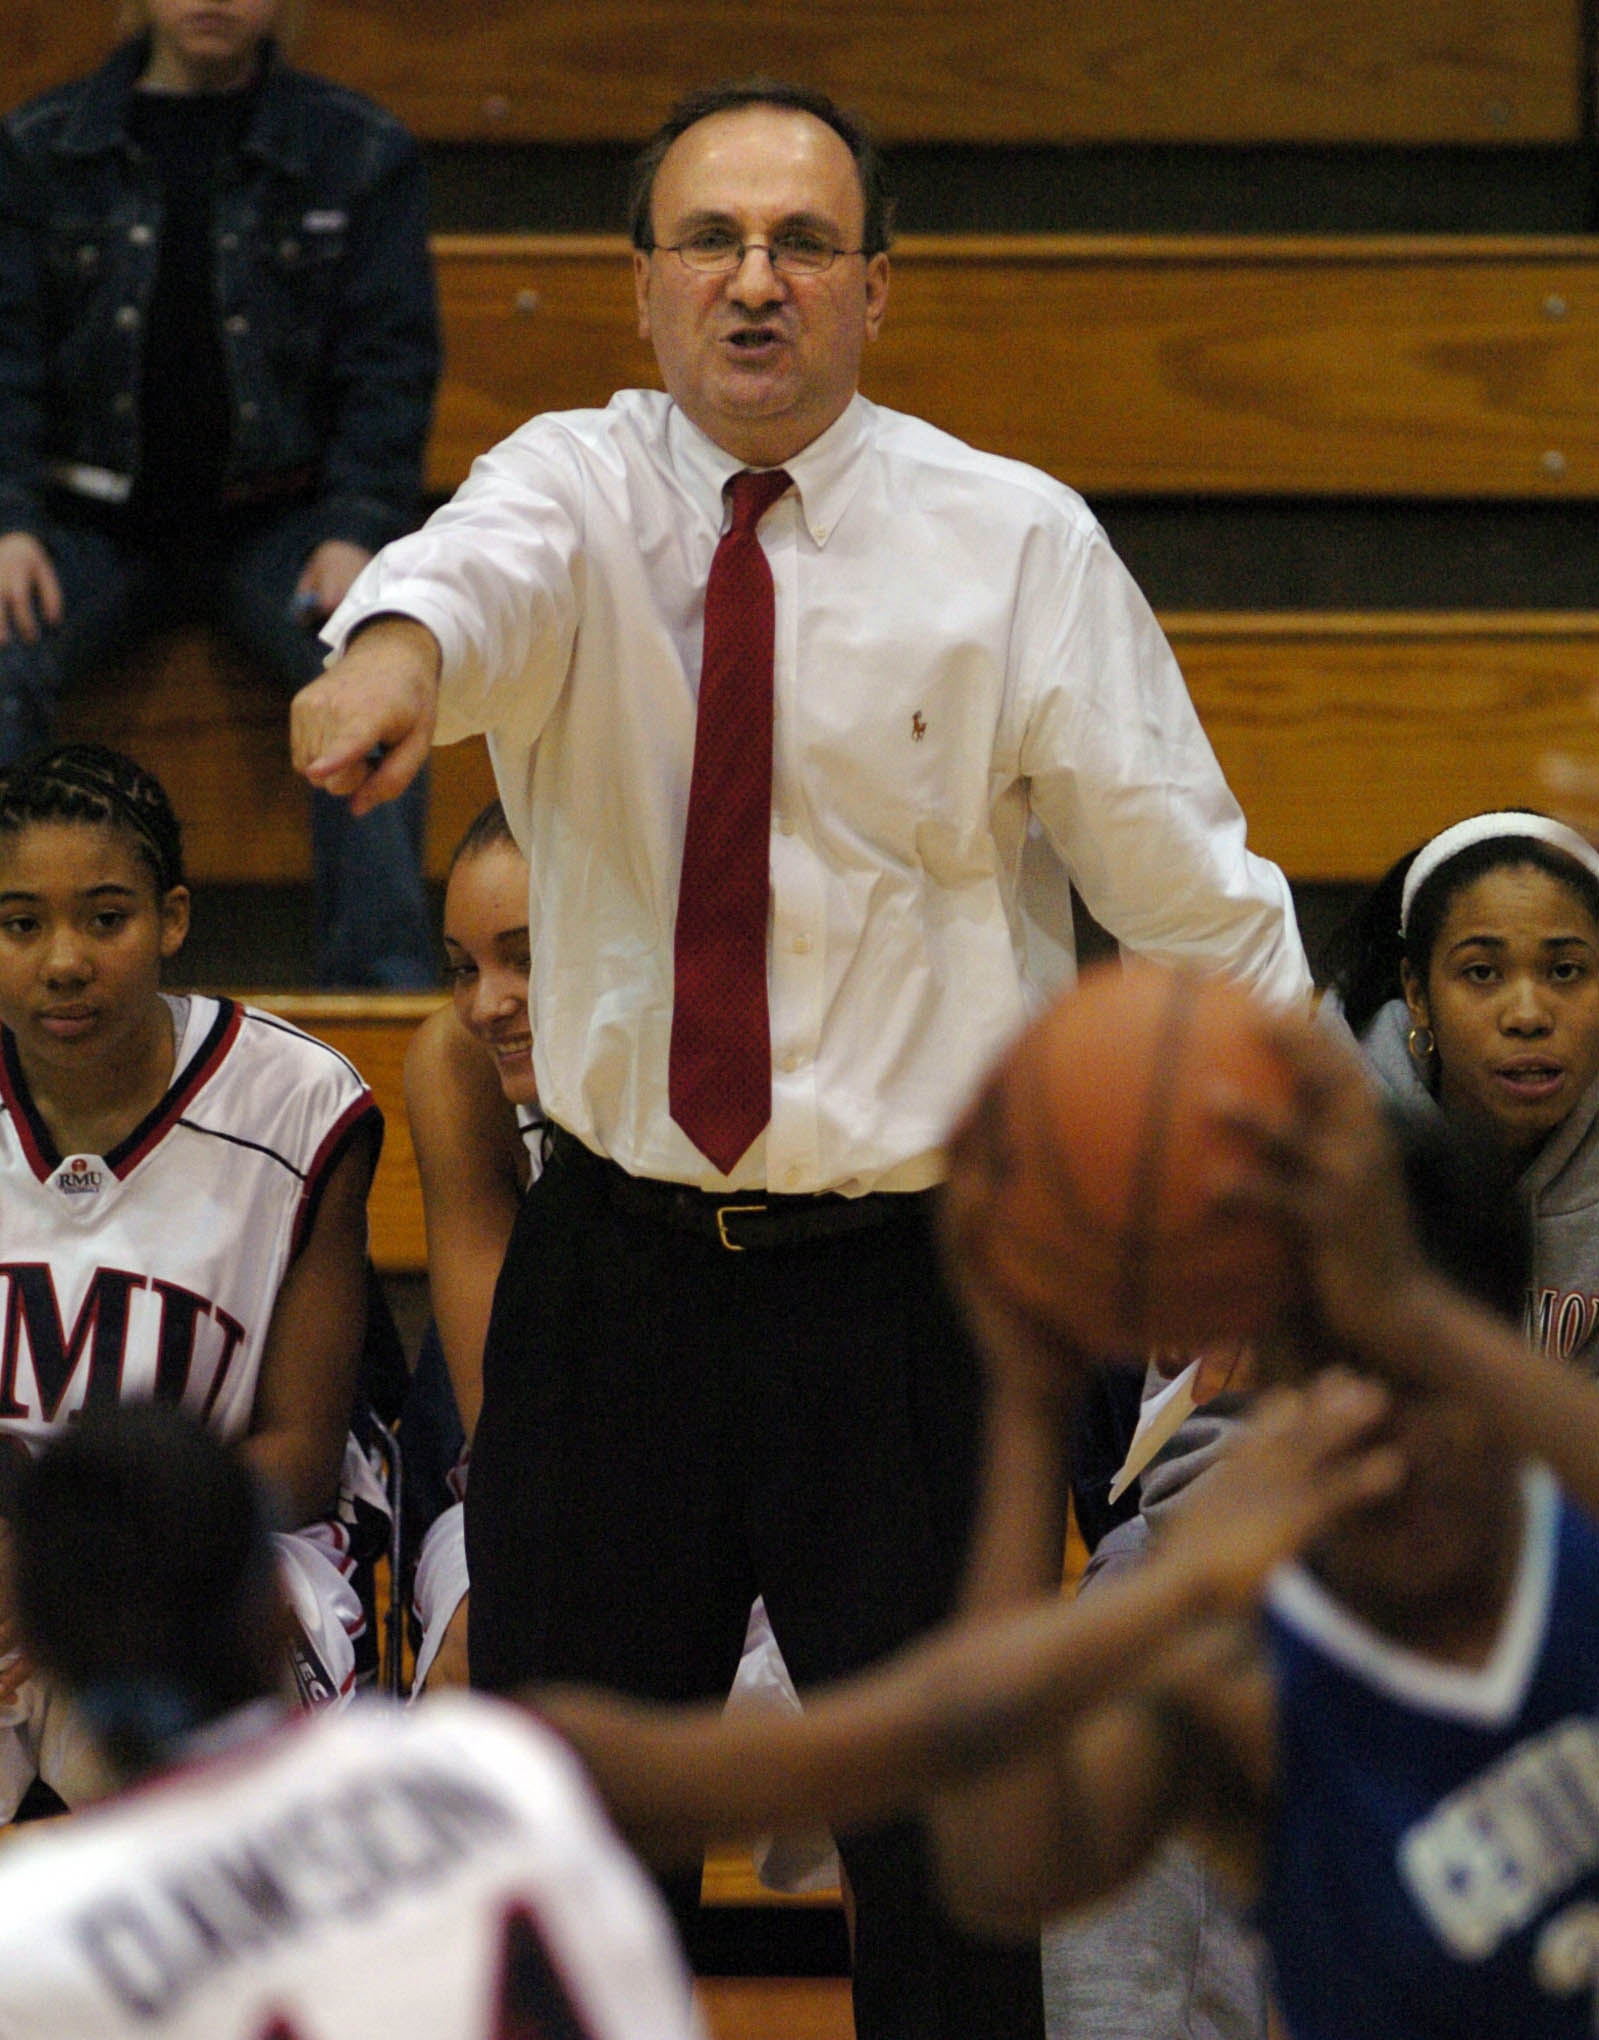 Sal Buscaglia shouts out instructions during a Robert Morris game (News file photo).